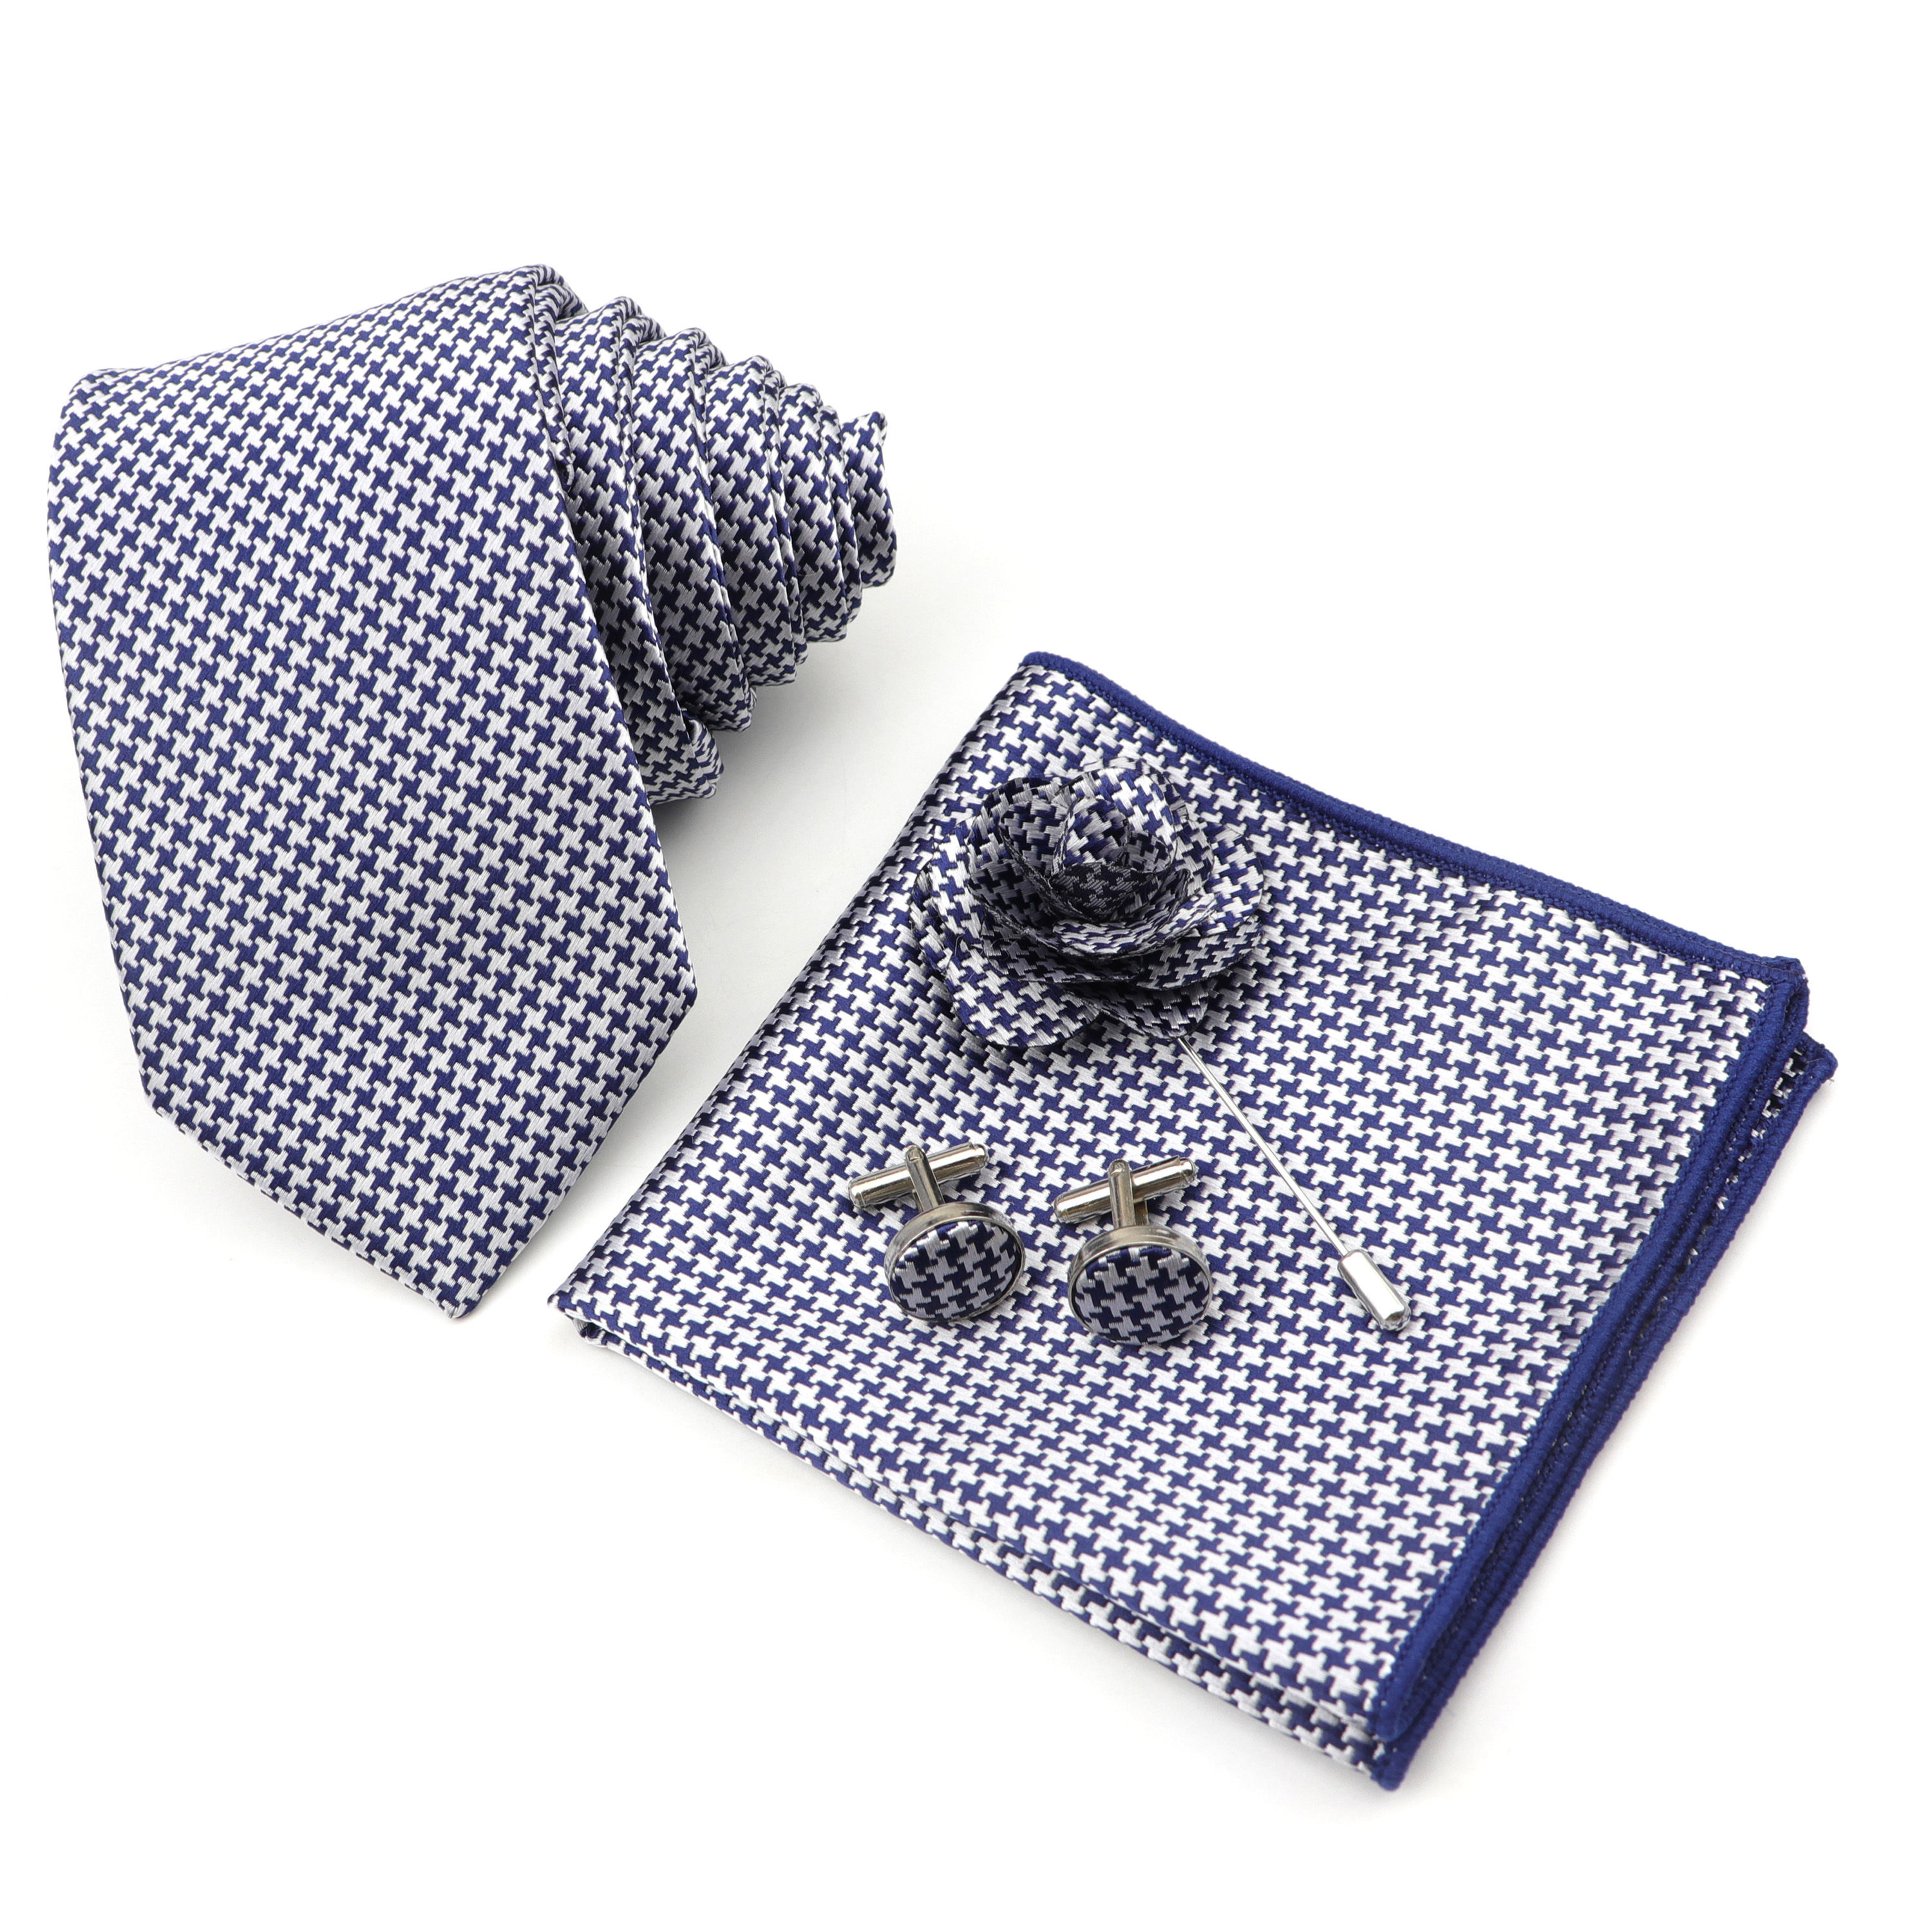 Men's Tie Handkerchief Cufflinks Corsage Set 7cm Polyester Striped Narrow Ties 4 Pcs Suits